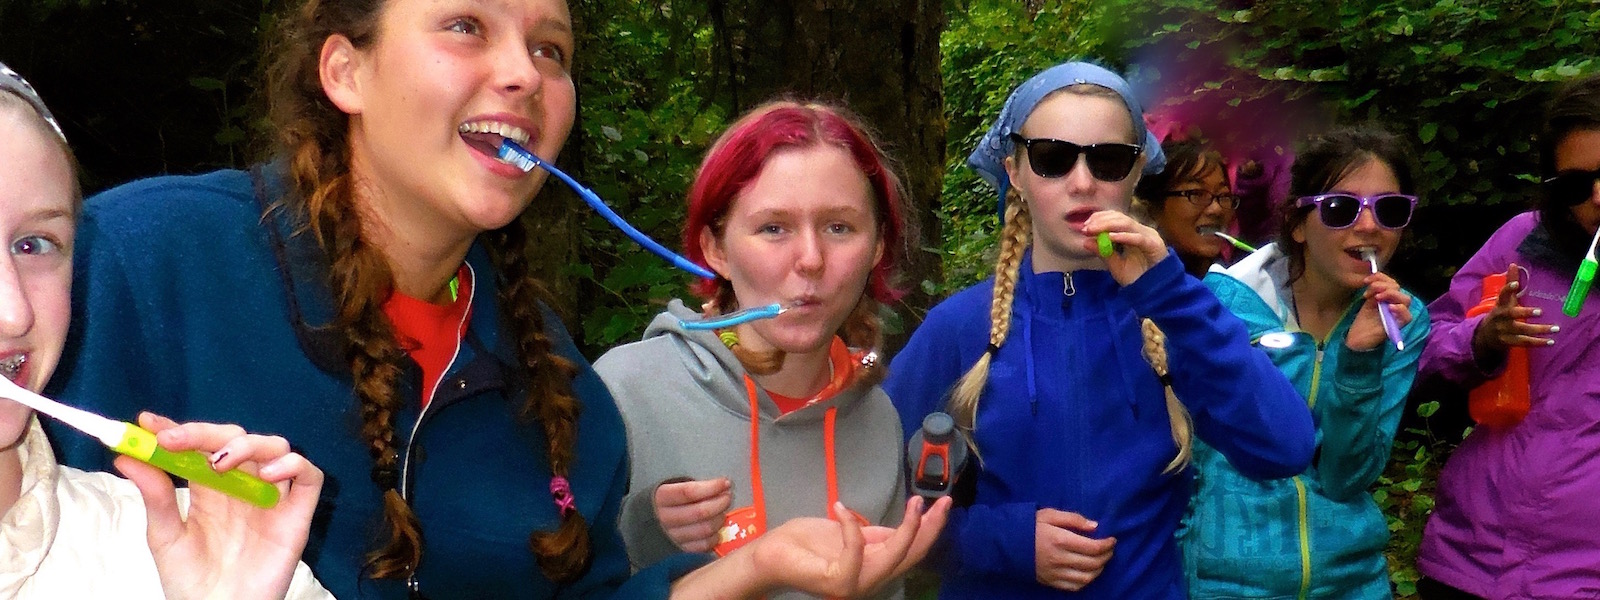 Personal Hygiene at Outdoor Girls Summer Camp